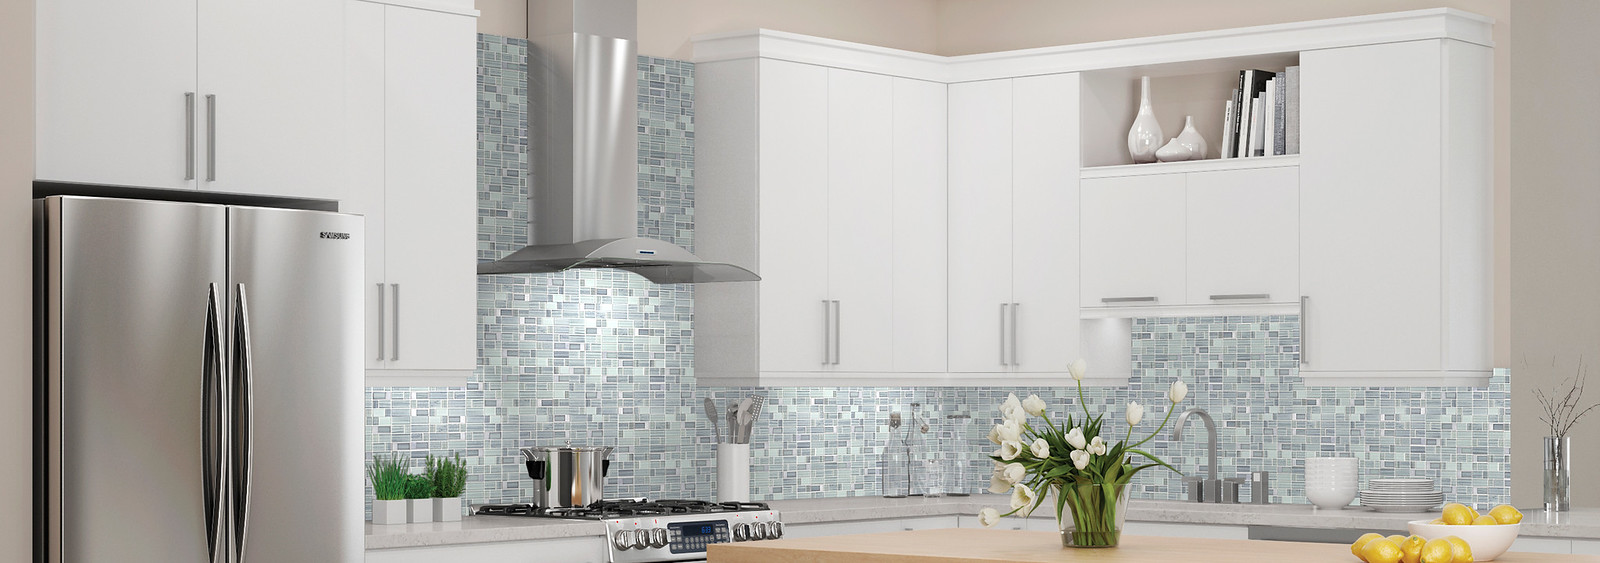 Sterling Mosaic Backsplash with White Kitchen Cabinets